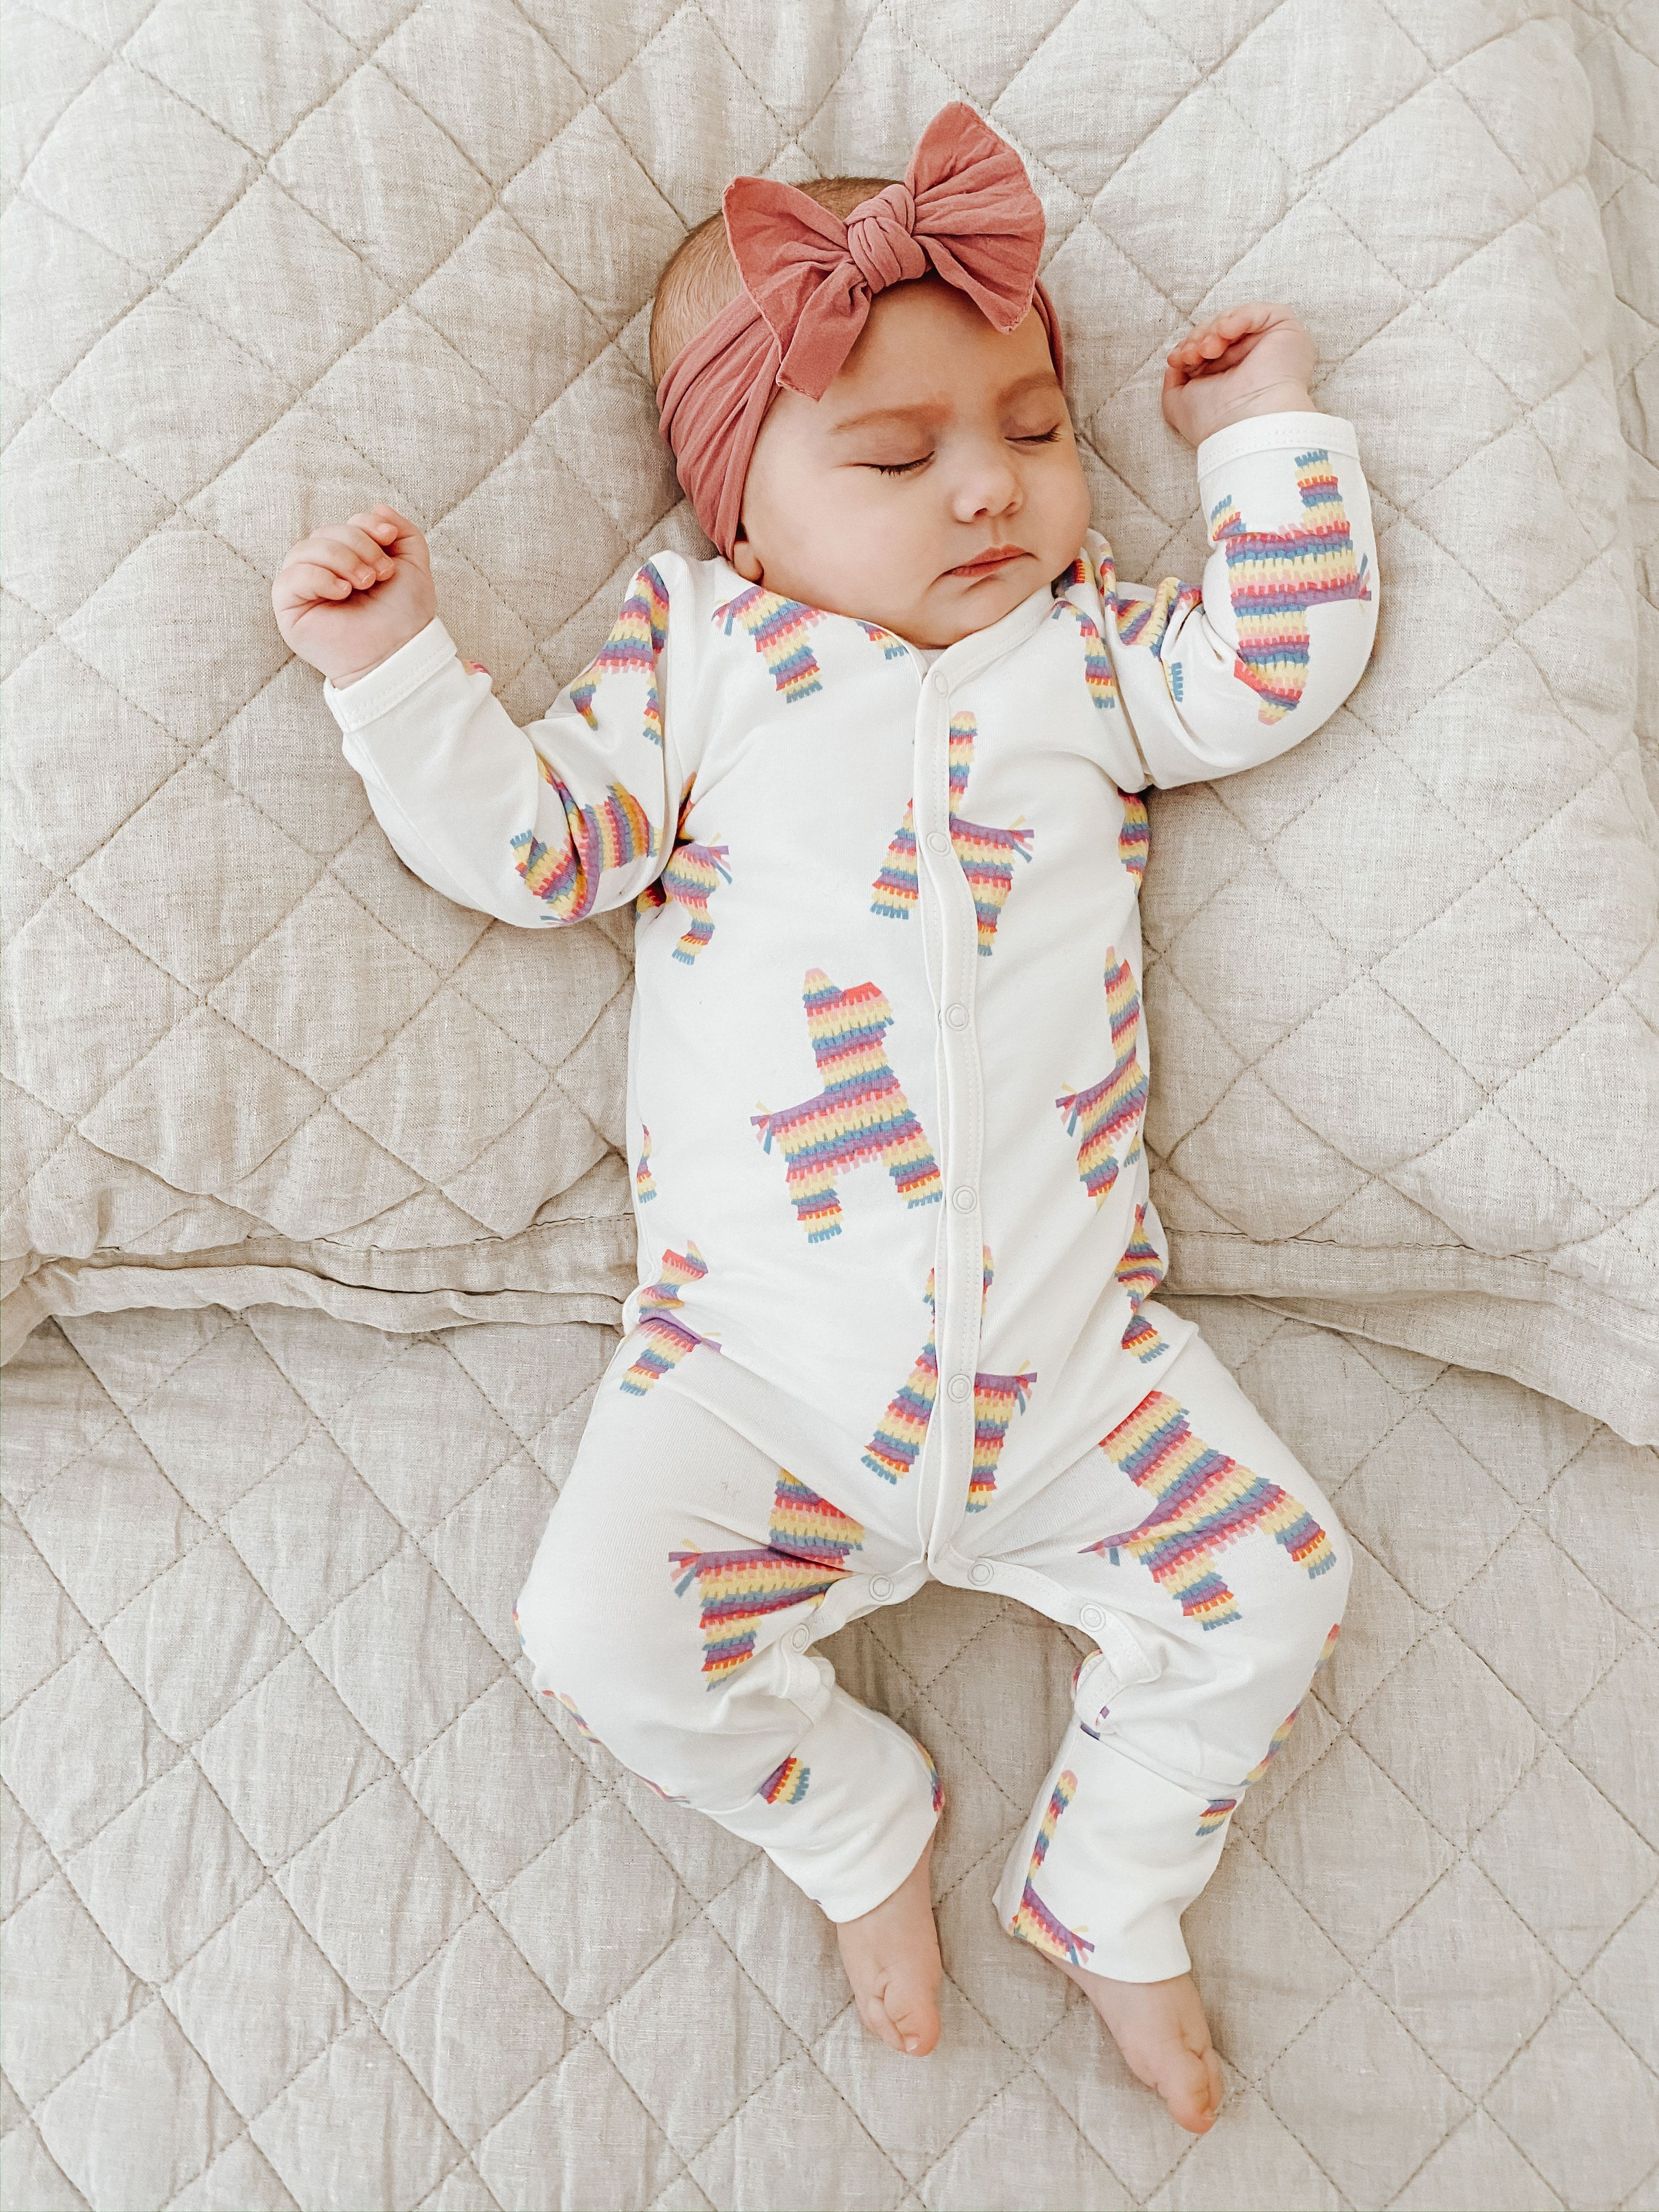 On The Go One Piece Newborn Girl Outfits Baby Girl Outfits Newborn Baby Outfits Newborn